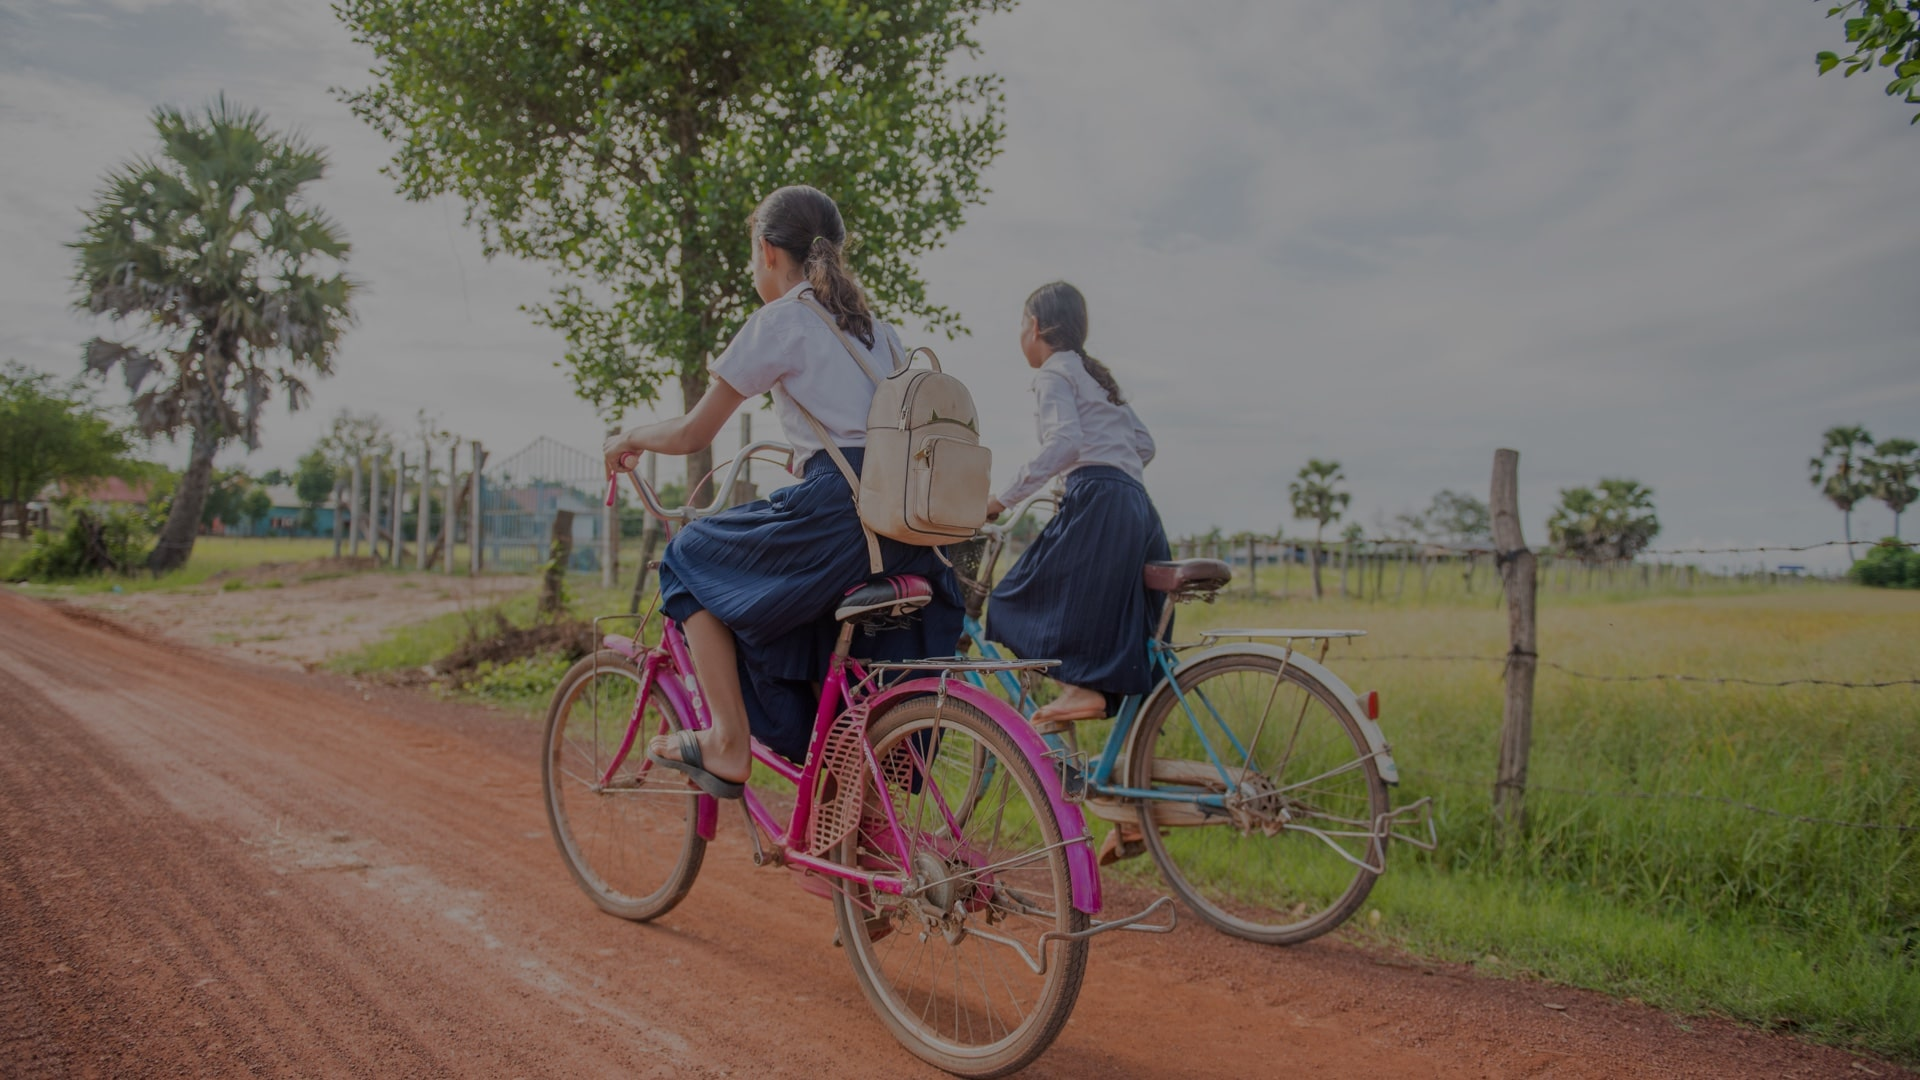 Shot from behind of two ladies riding their bikes to school